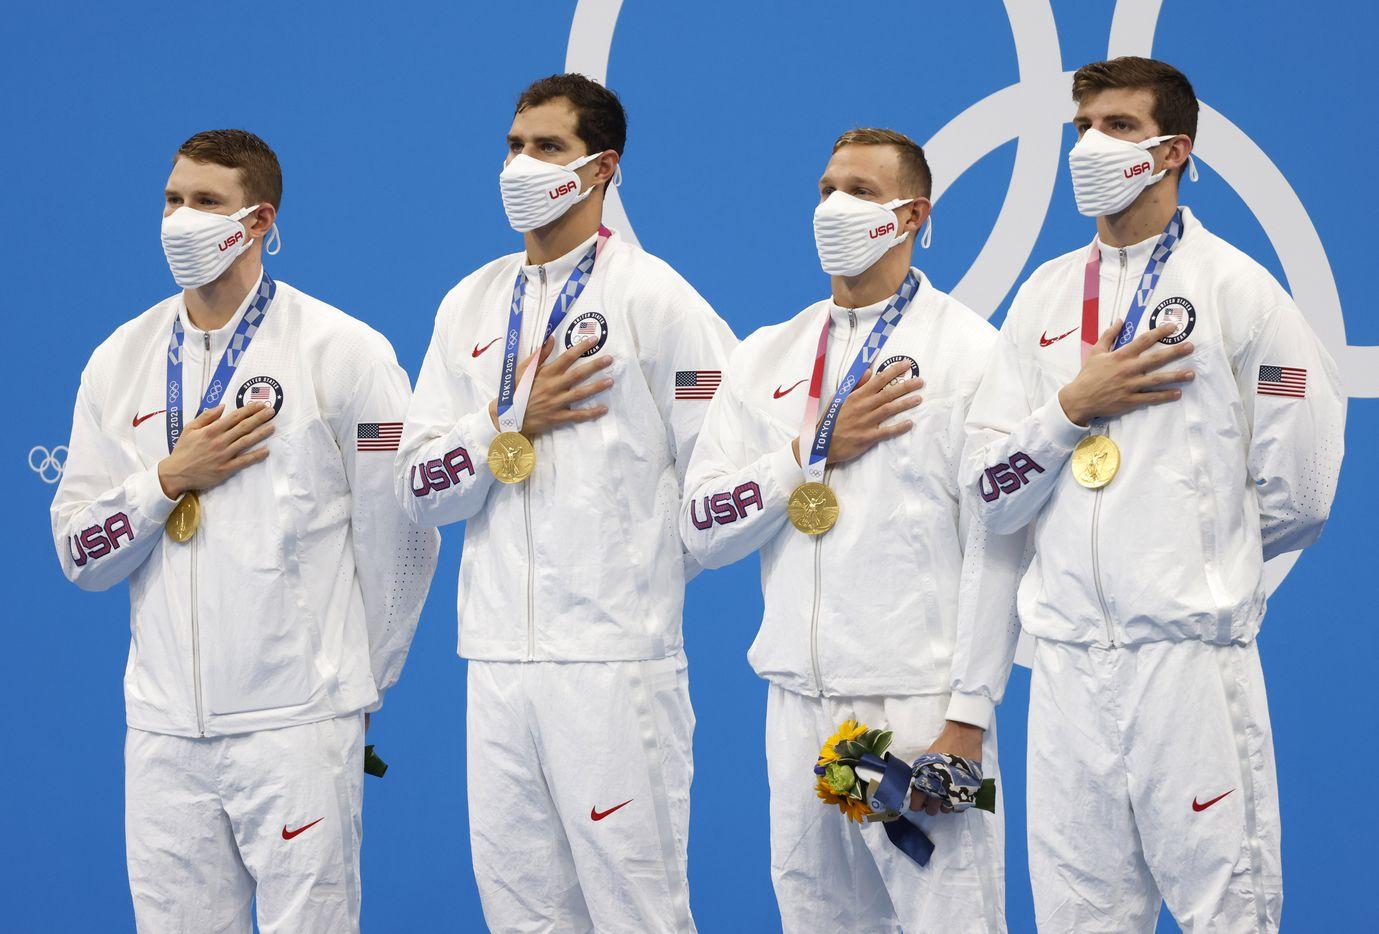 (Left to right) USA's Ryan Murphy, Michael Andrew, Caeleb Dressel, and Zach Apple stand as the national anthem is played during the men's 4x100 meter medley relay medal ceremony at the postponed 2020 Tokyo Olympics at Tokyo Aquatics Centre, on Sunday, August 1, 2021, in Tokyo, Japan. USA earned a gold medal, setting a new world record with a time of 3:26.78. (Vernon Bryant/The Dallas Morning News)